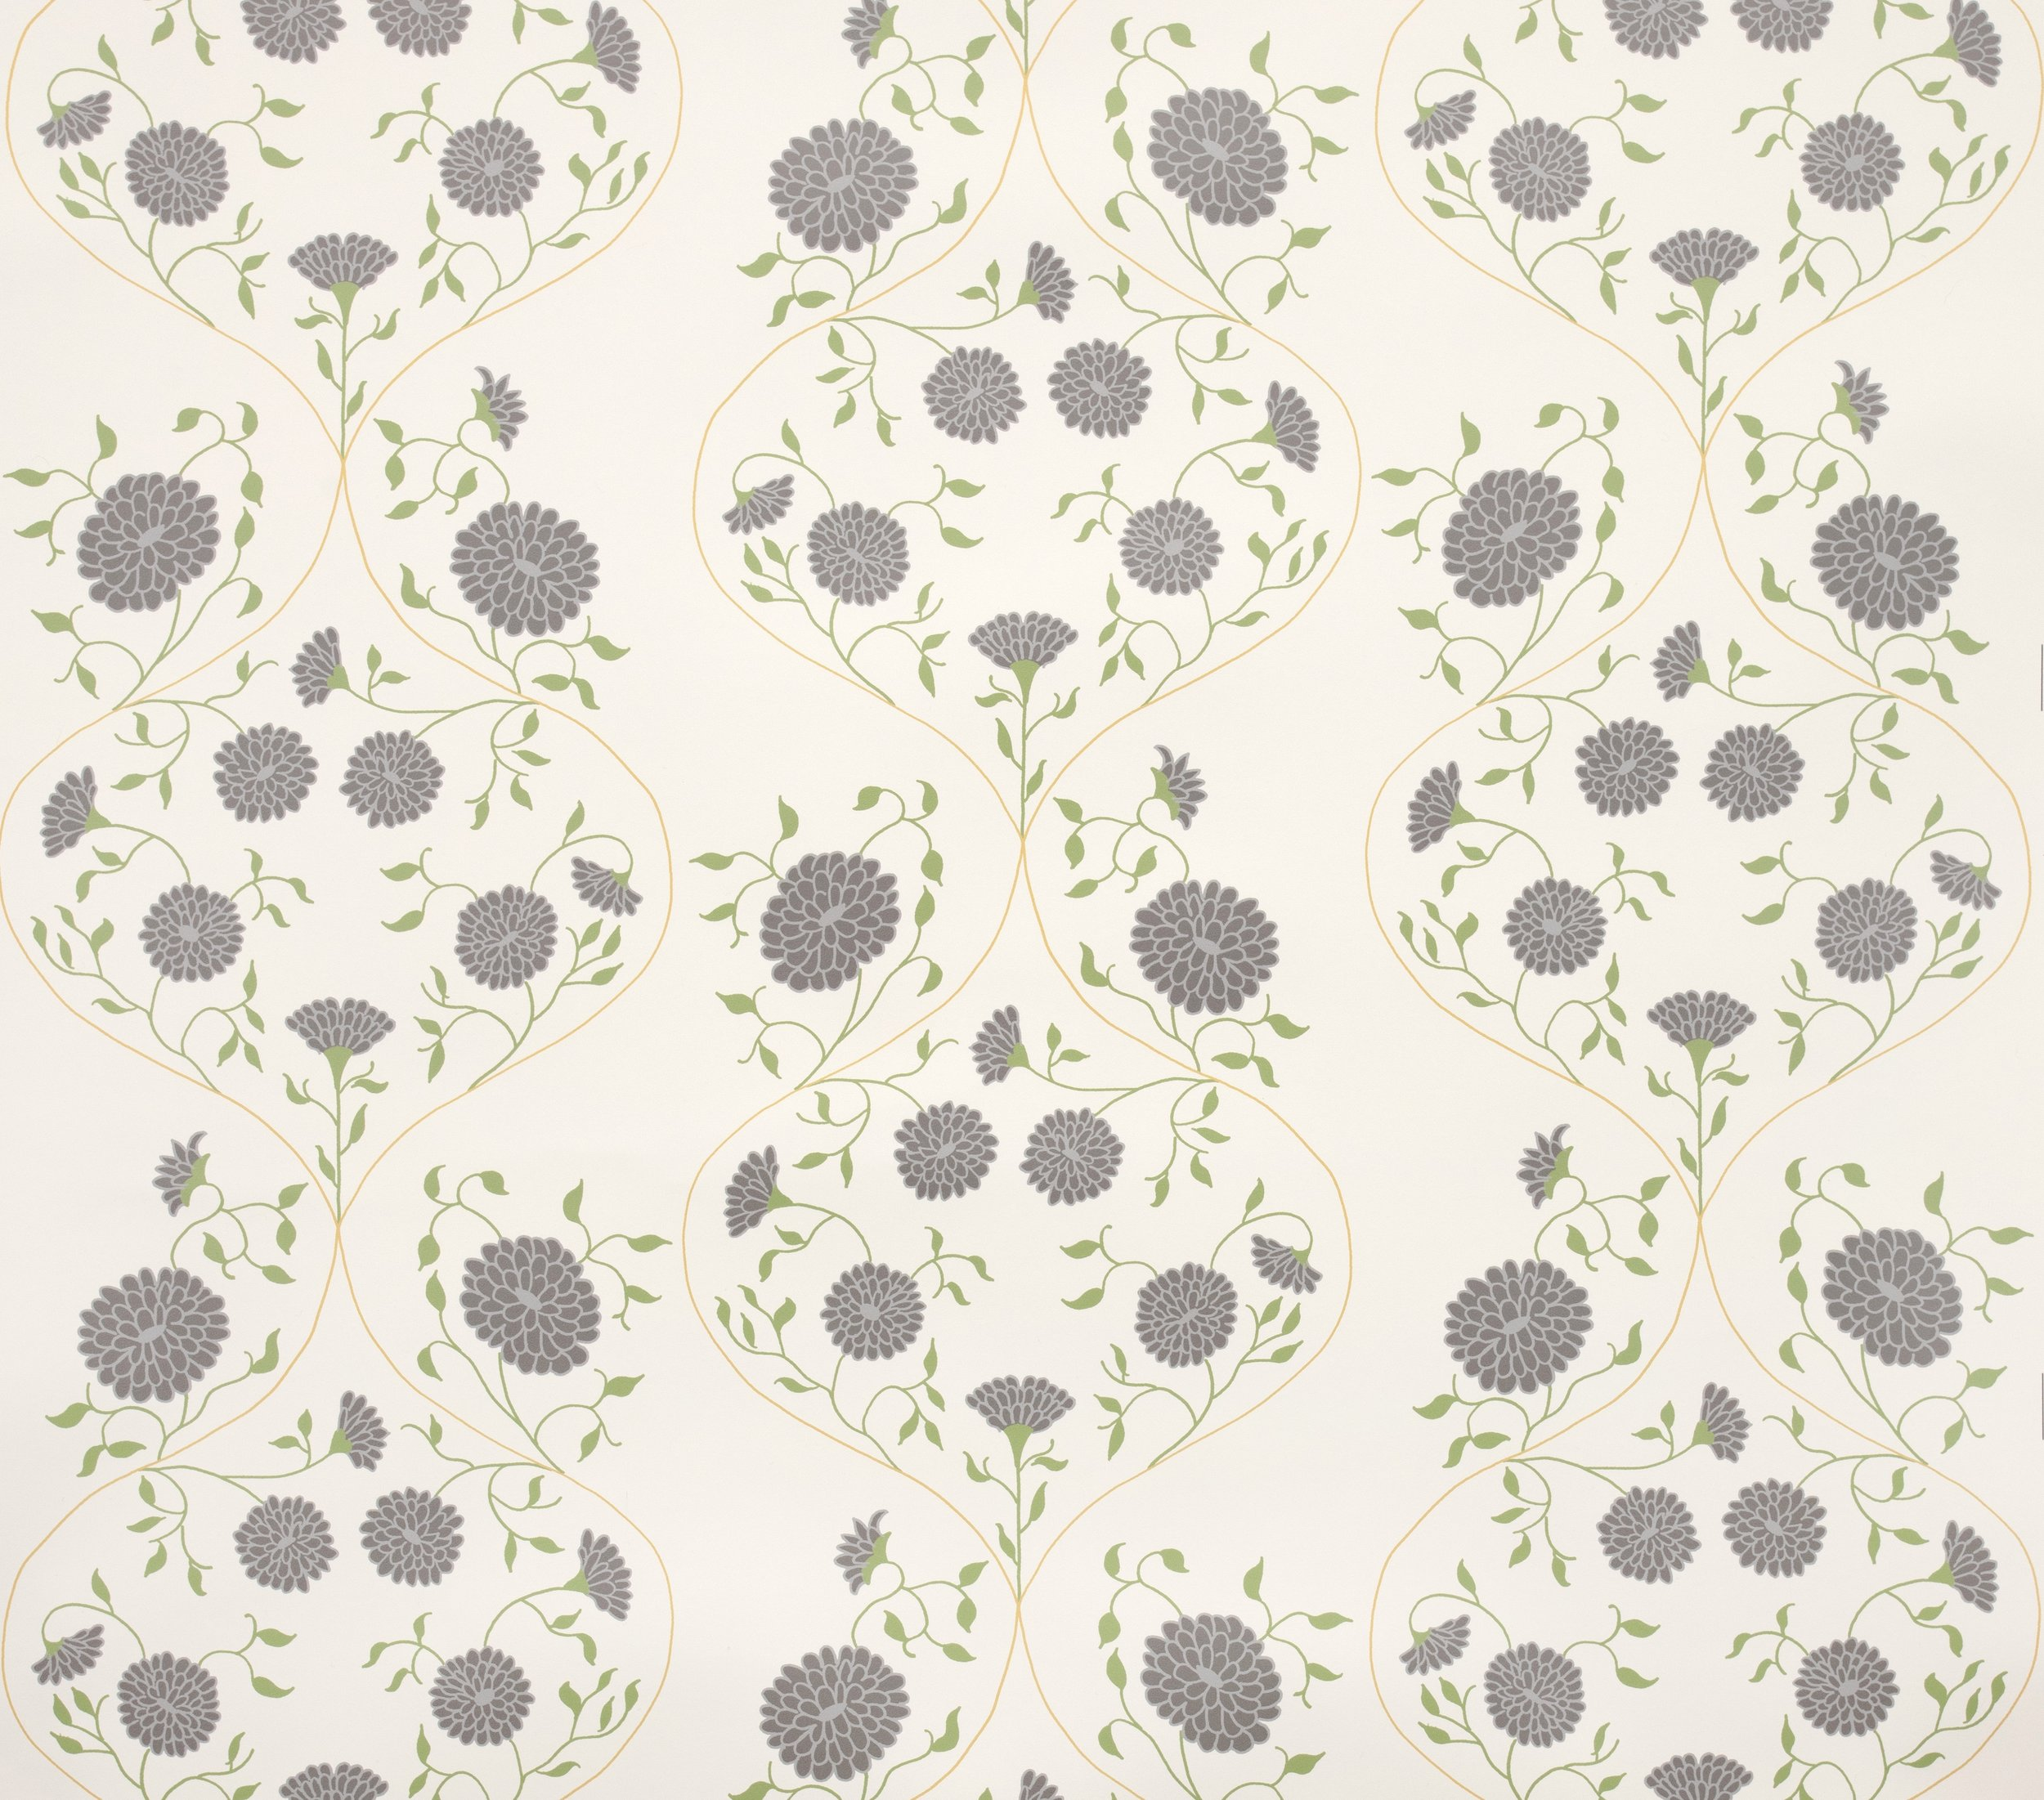 Jaipur Solid Wallpaper - Stone/Charcoal